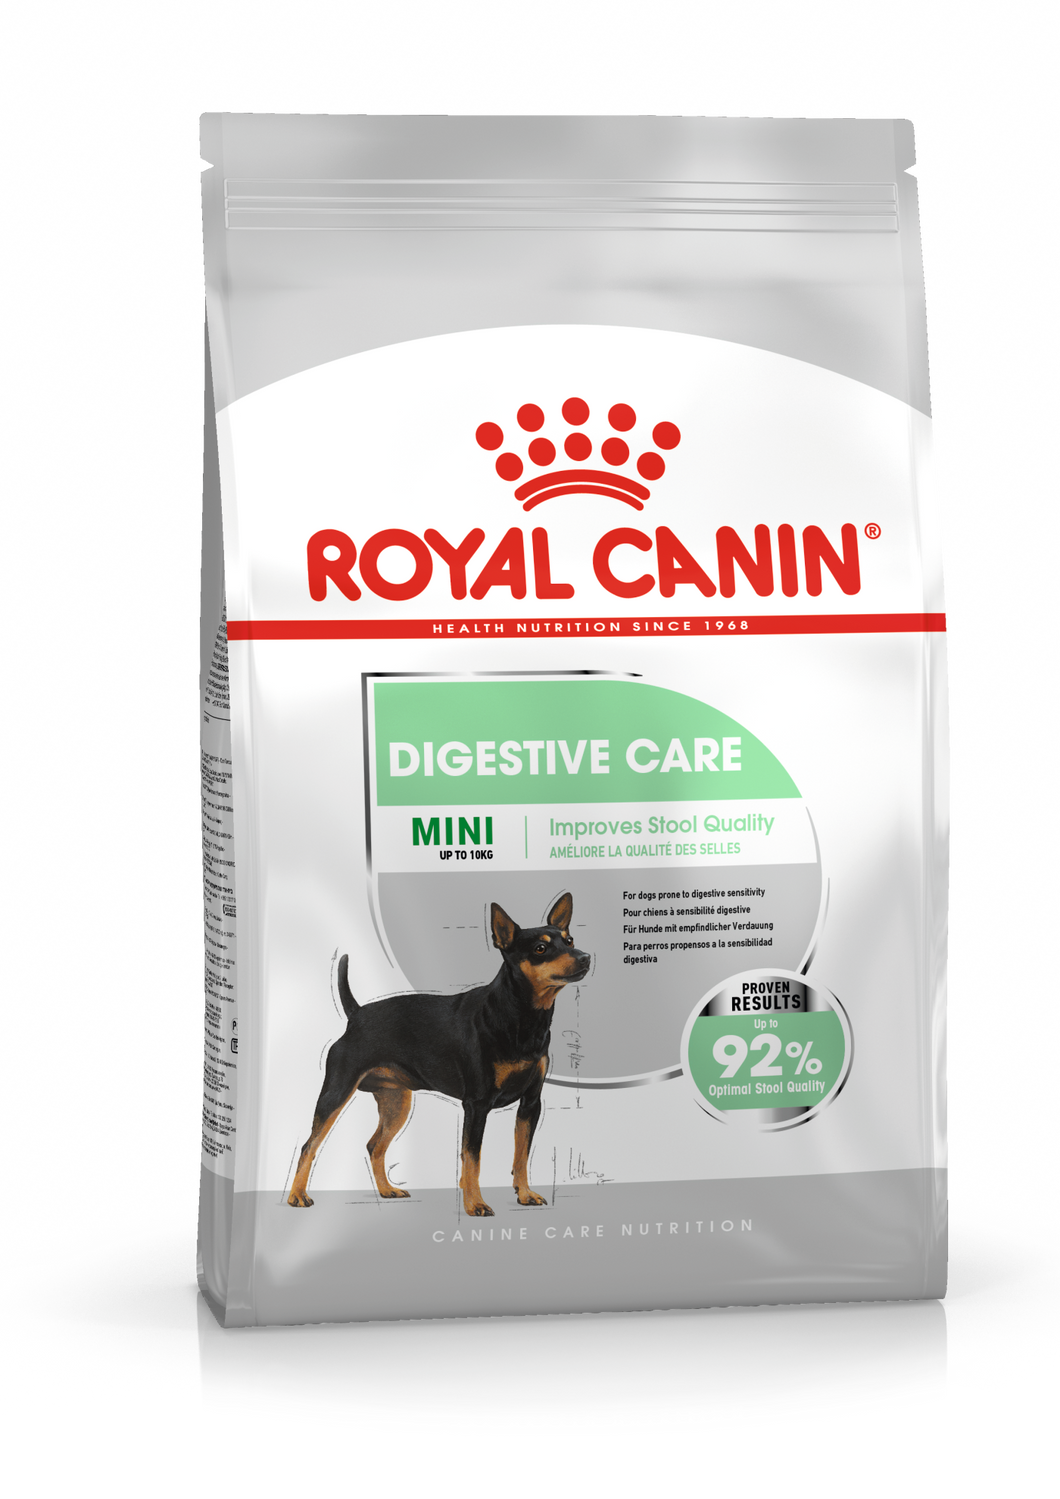 Royal Canin Mini Digestive Care Dry Dog Food (1kg)